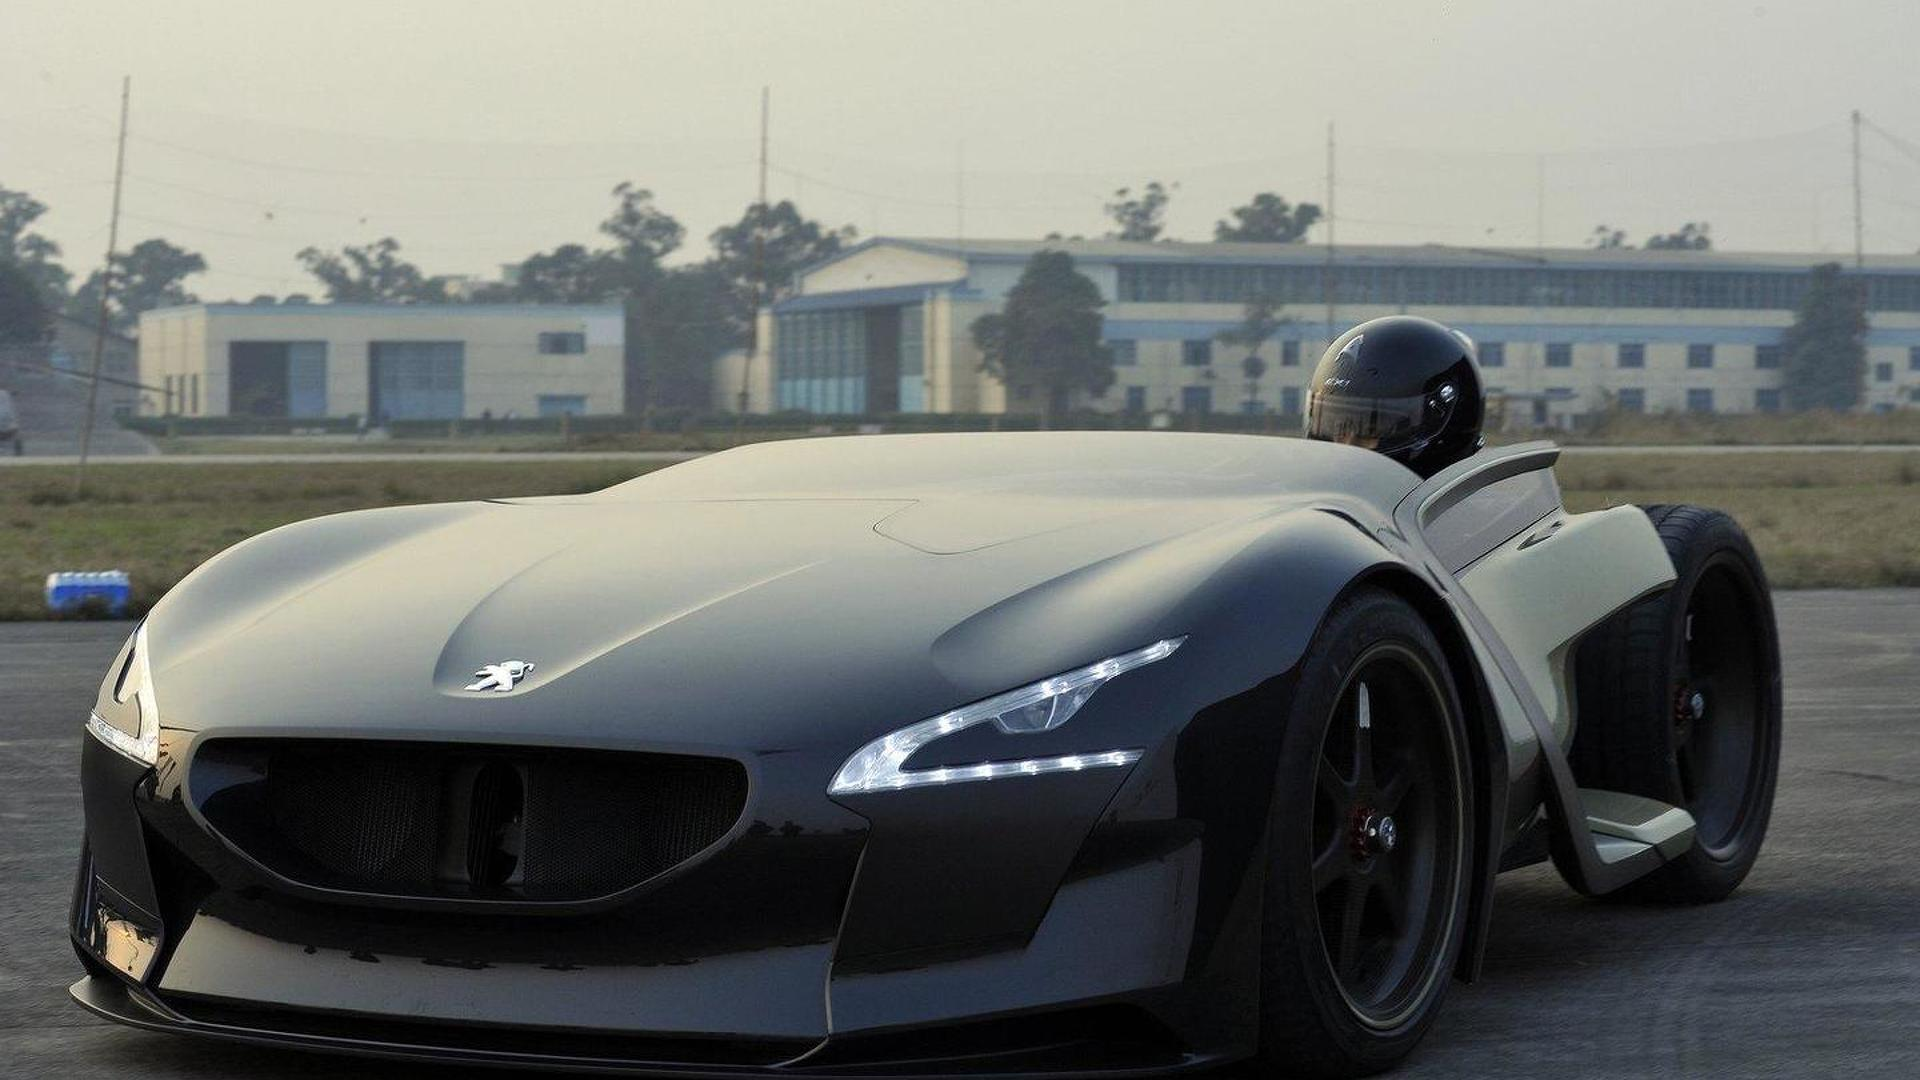 Peugeot EX1 sets electric car record on the Nürburgring